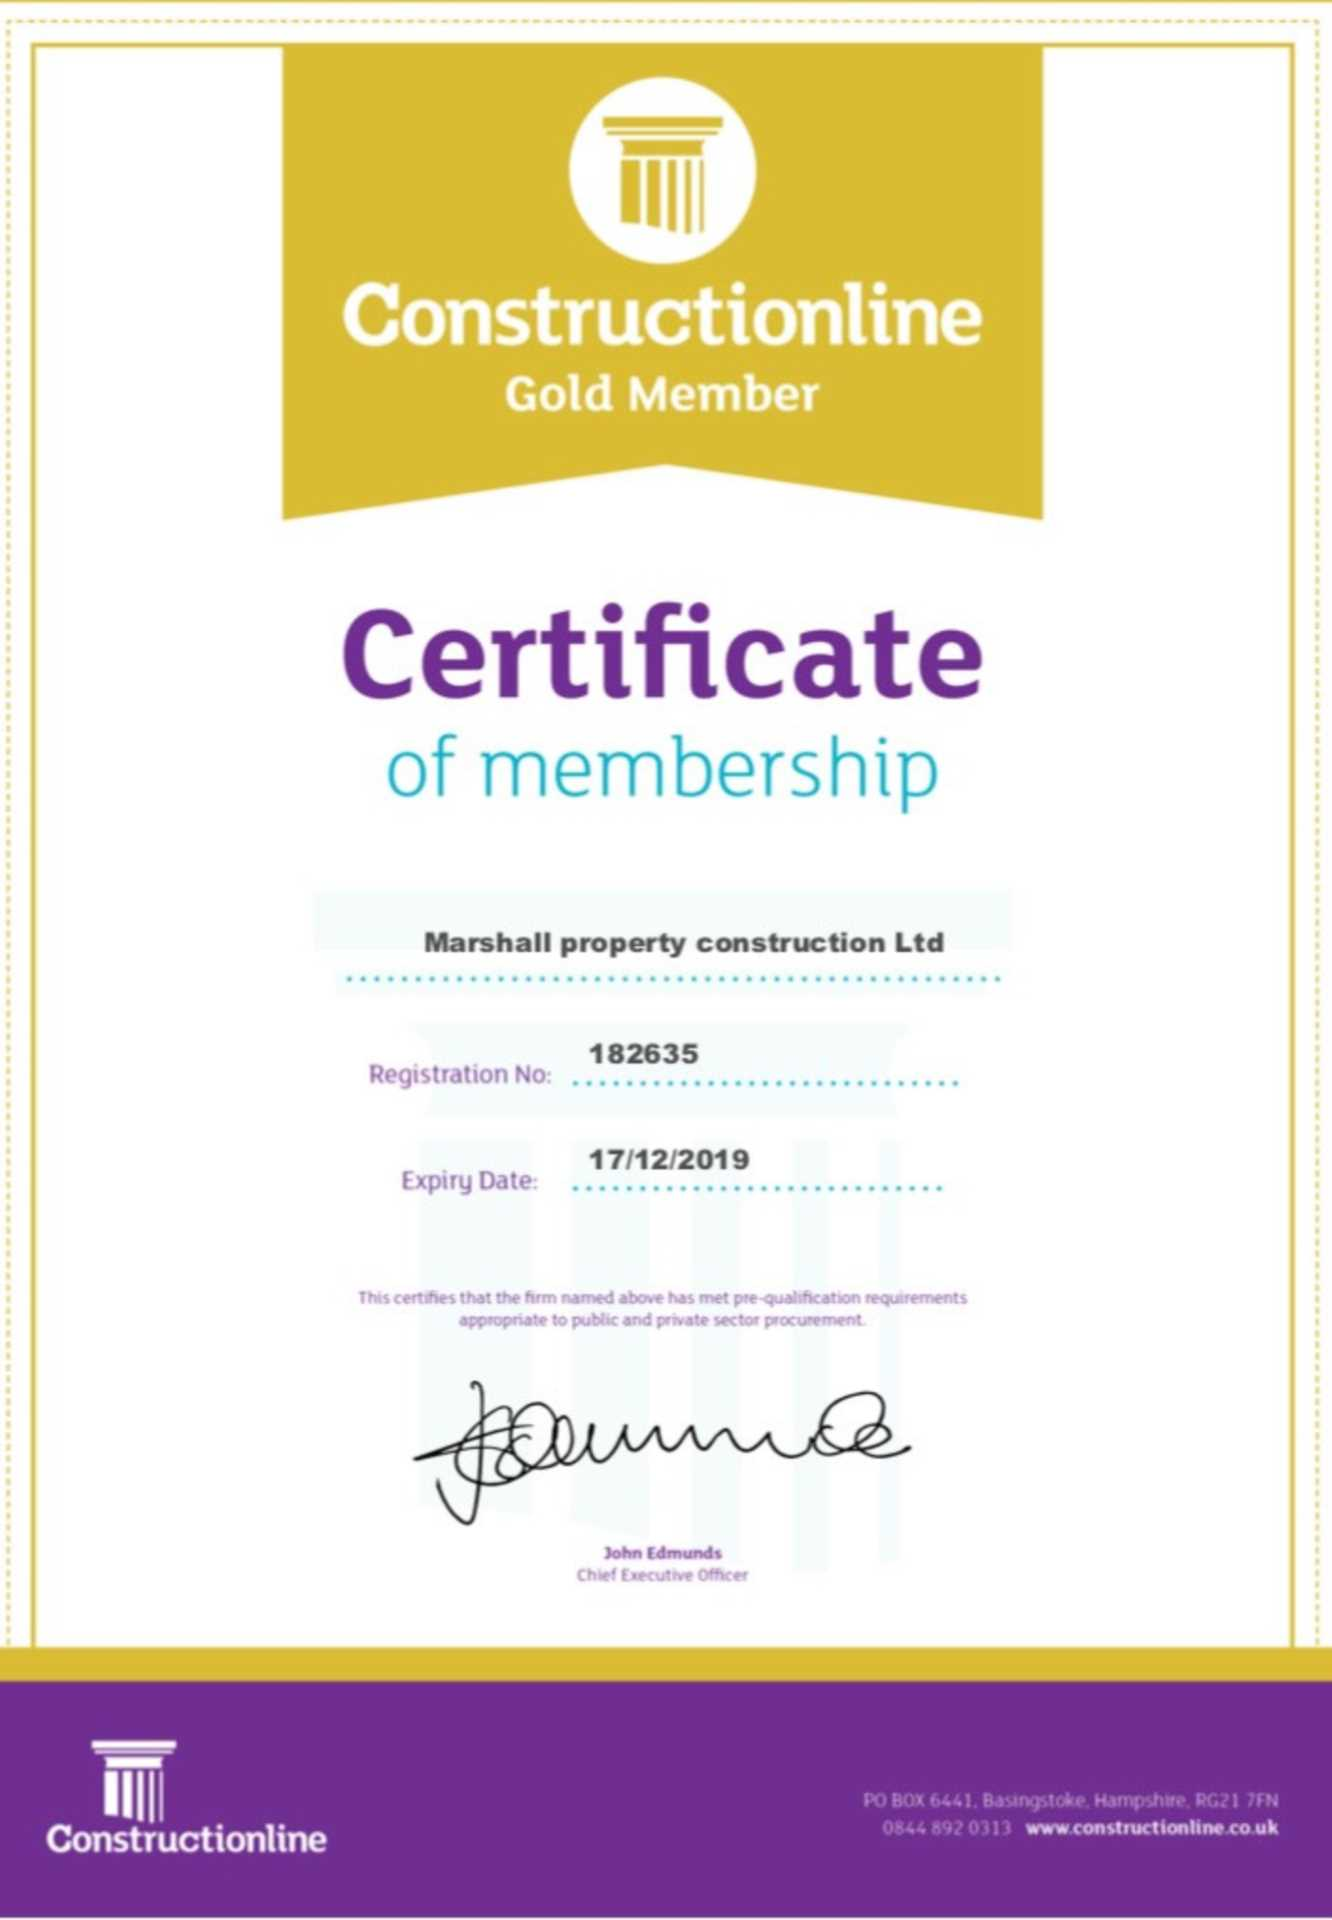 Marshall Property Construction achieves Constructionline Gold